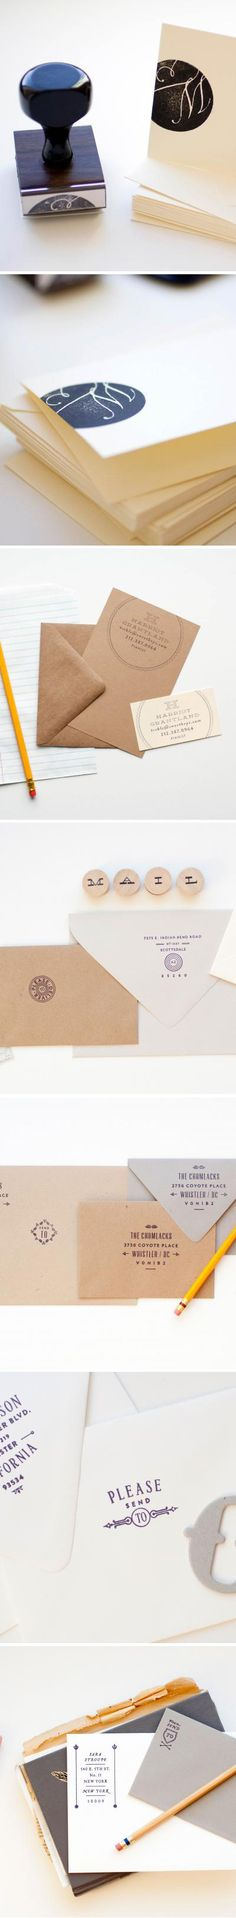 Stamps for Wedding Invites | Visit our website: www.mylemariage.com  #LeMariage #Wedding #Magazine #Indonesia